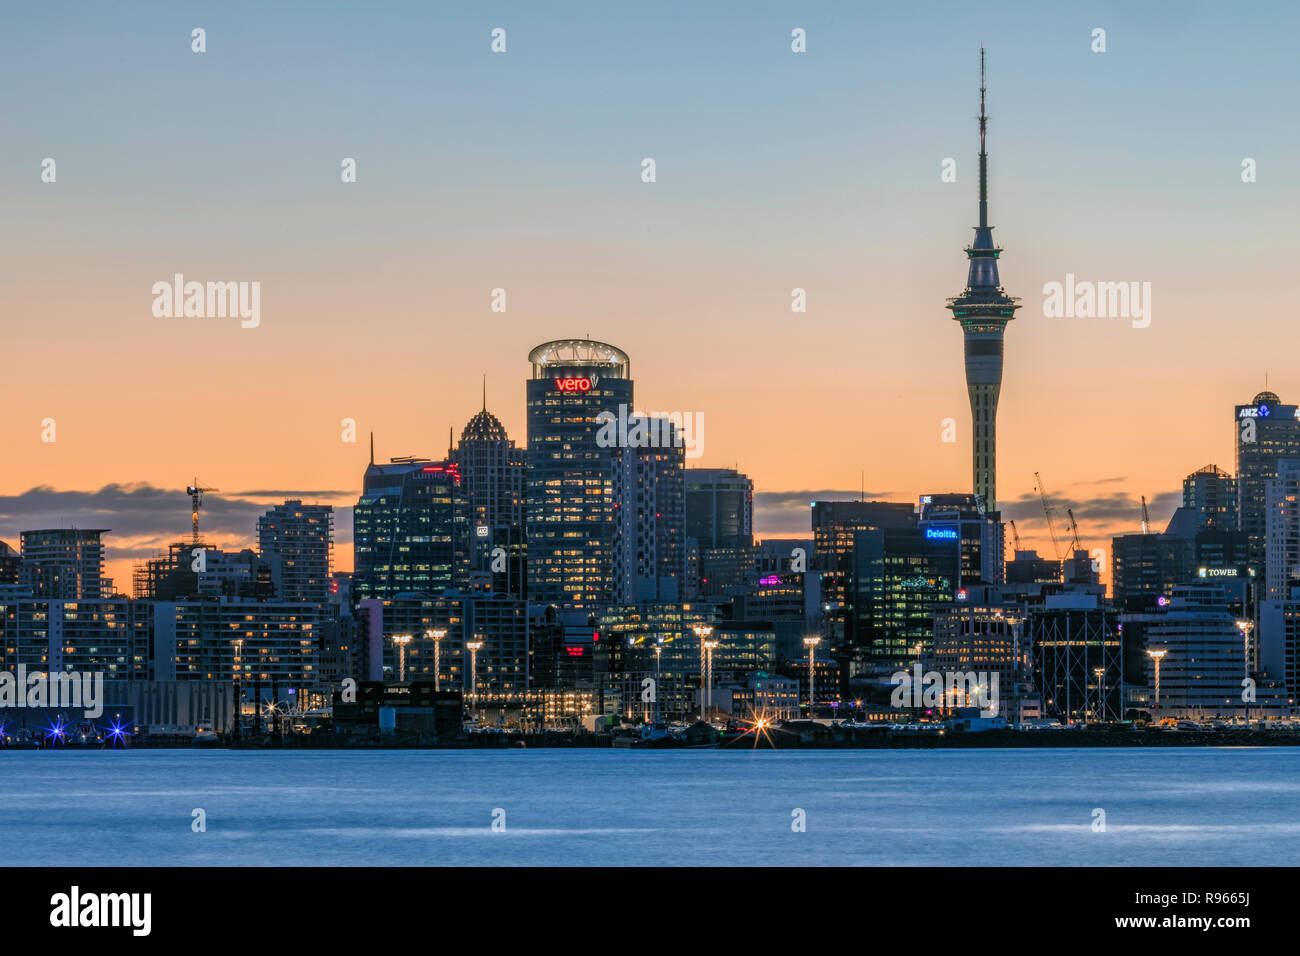 Auckland, North Island, New Zealand - Stock Image